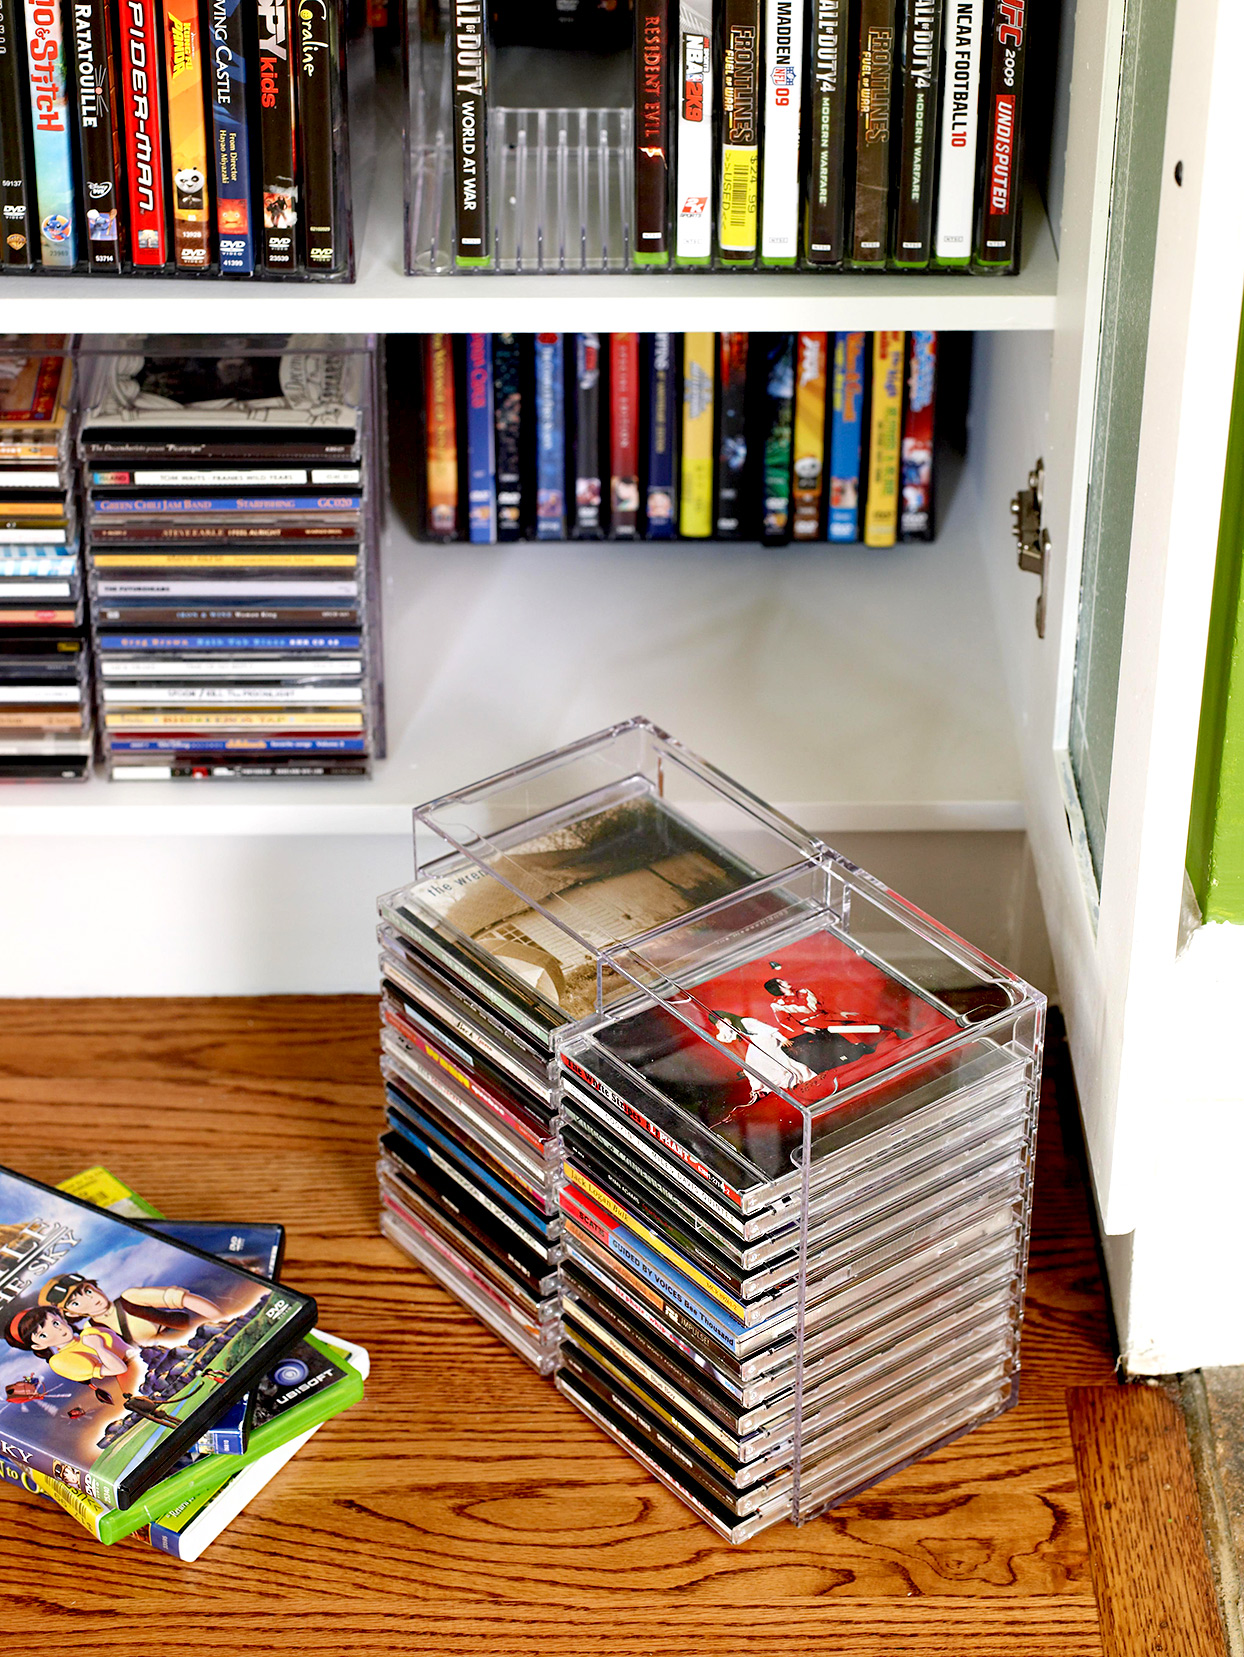 Stacks of DVDs and CDs